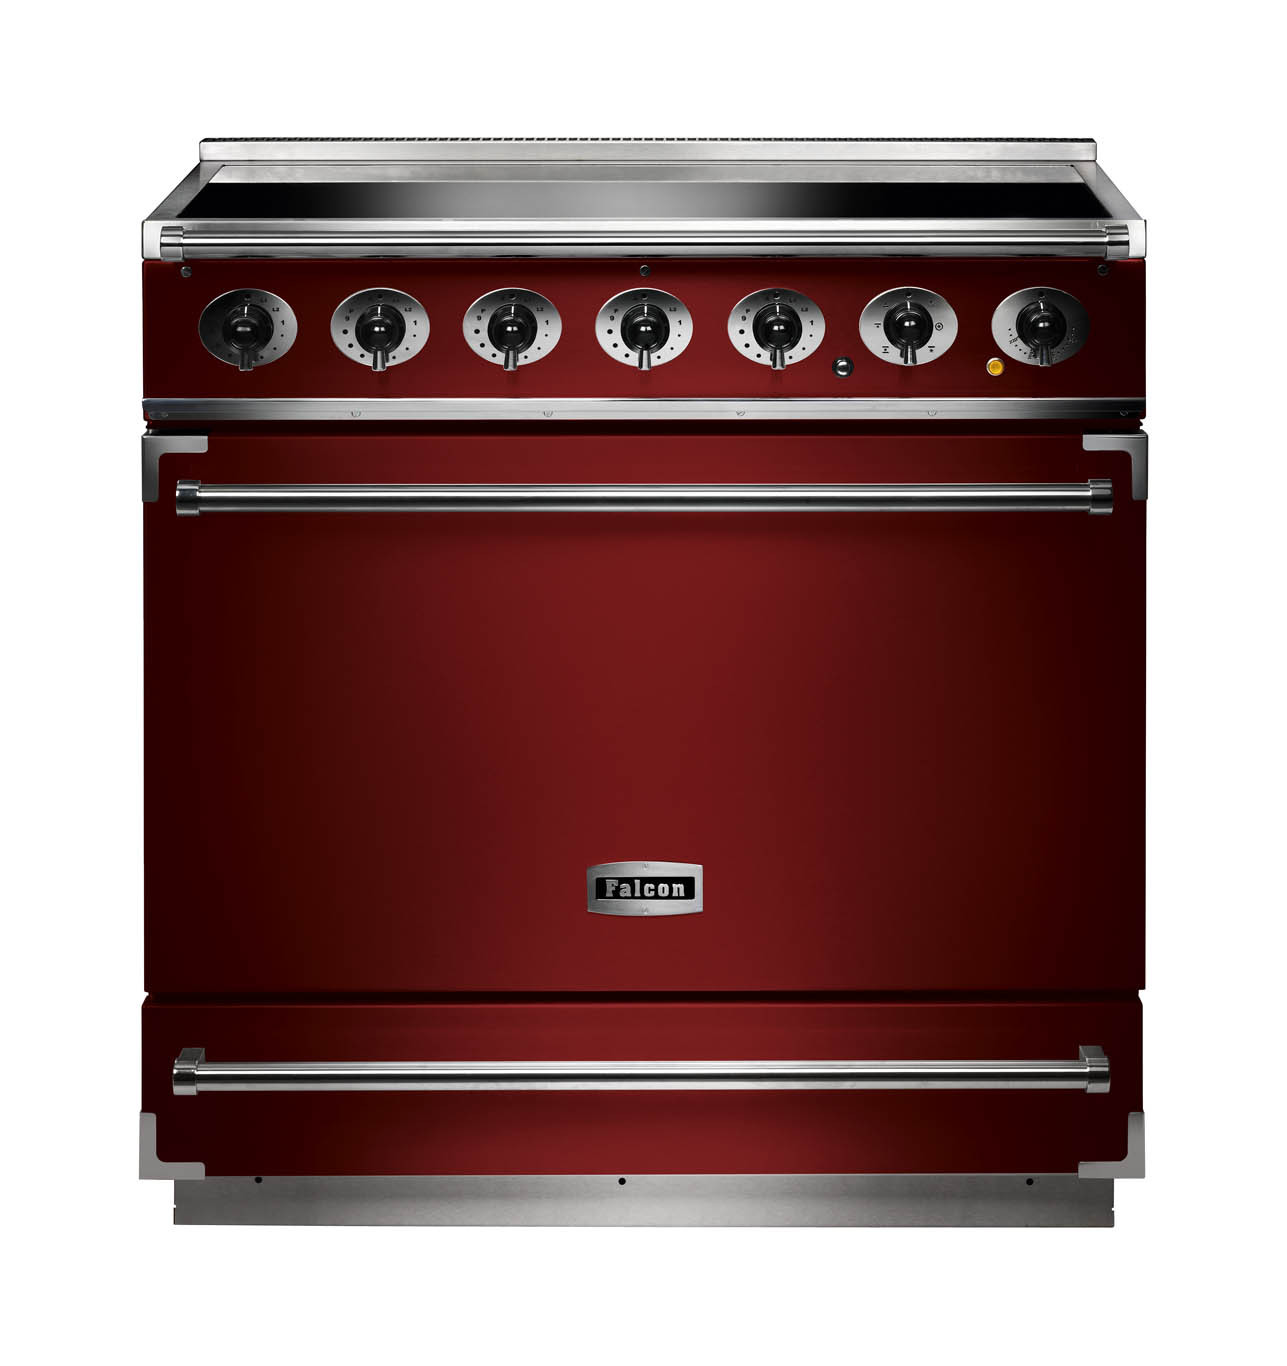 Falcon 900S Induction Cherry Red Range Cooker